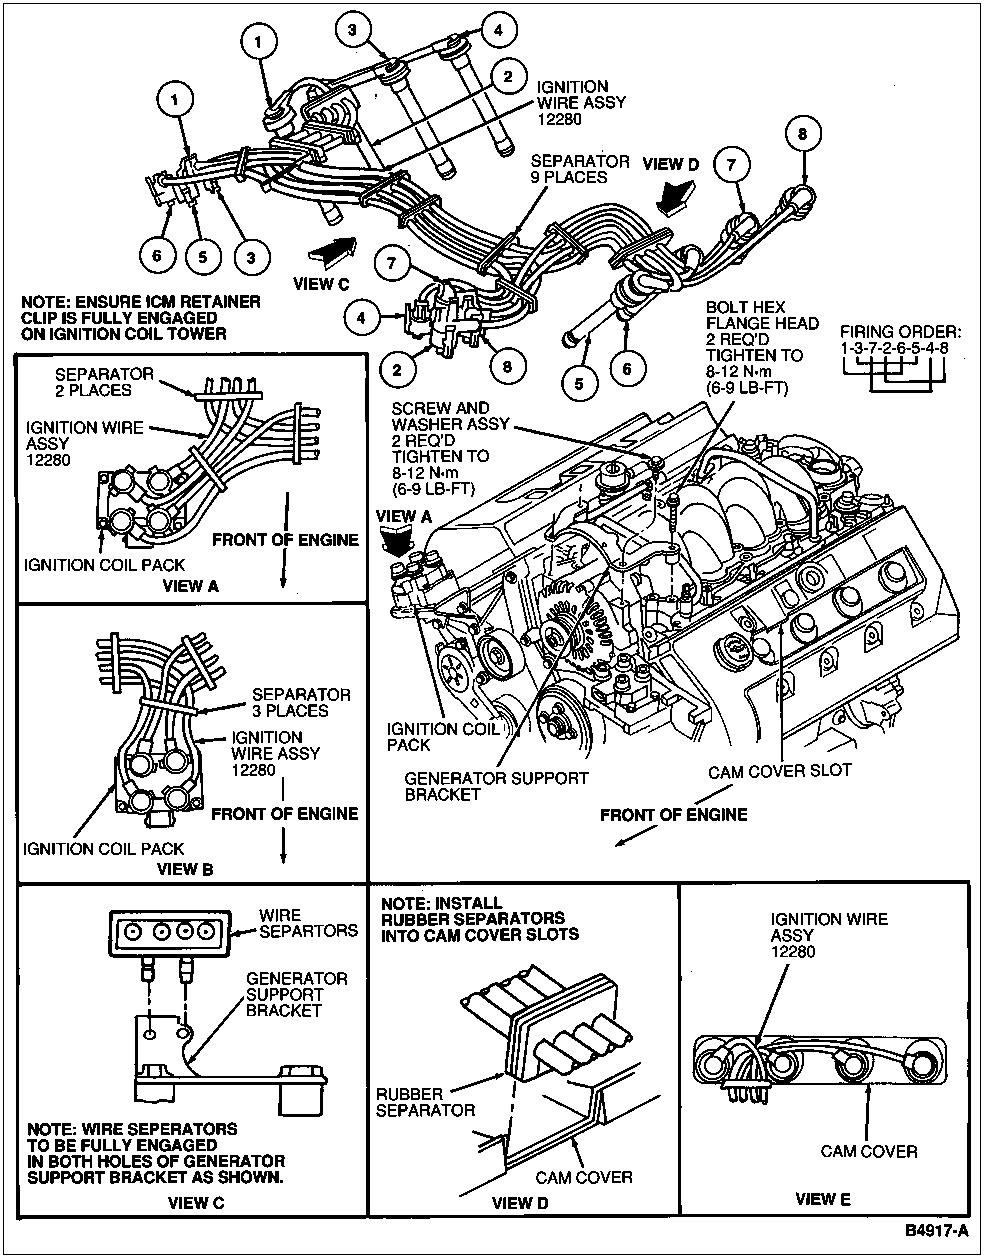 1998 lincoln navigator engine diagram